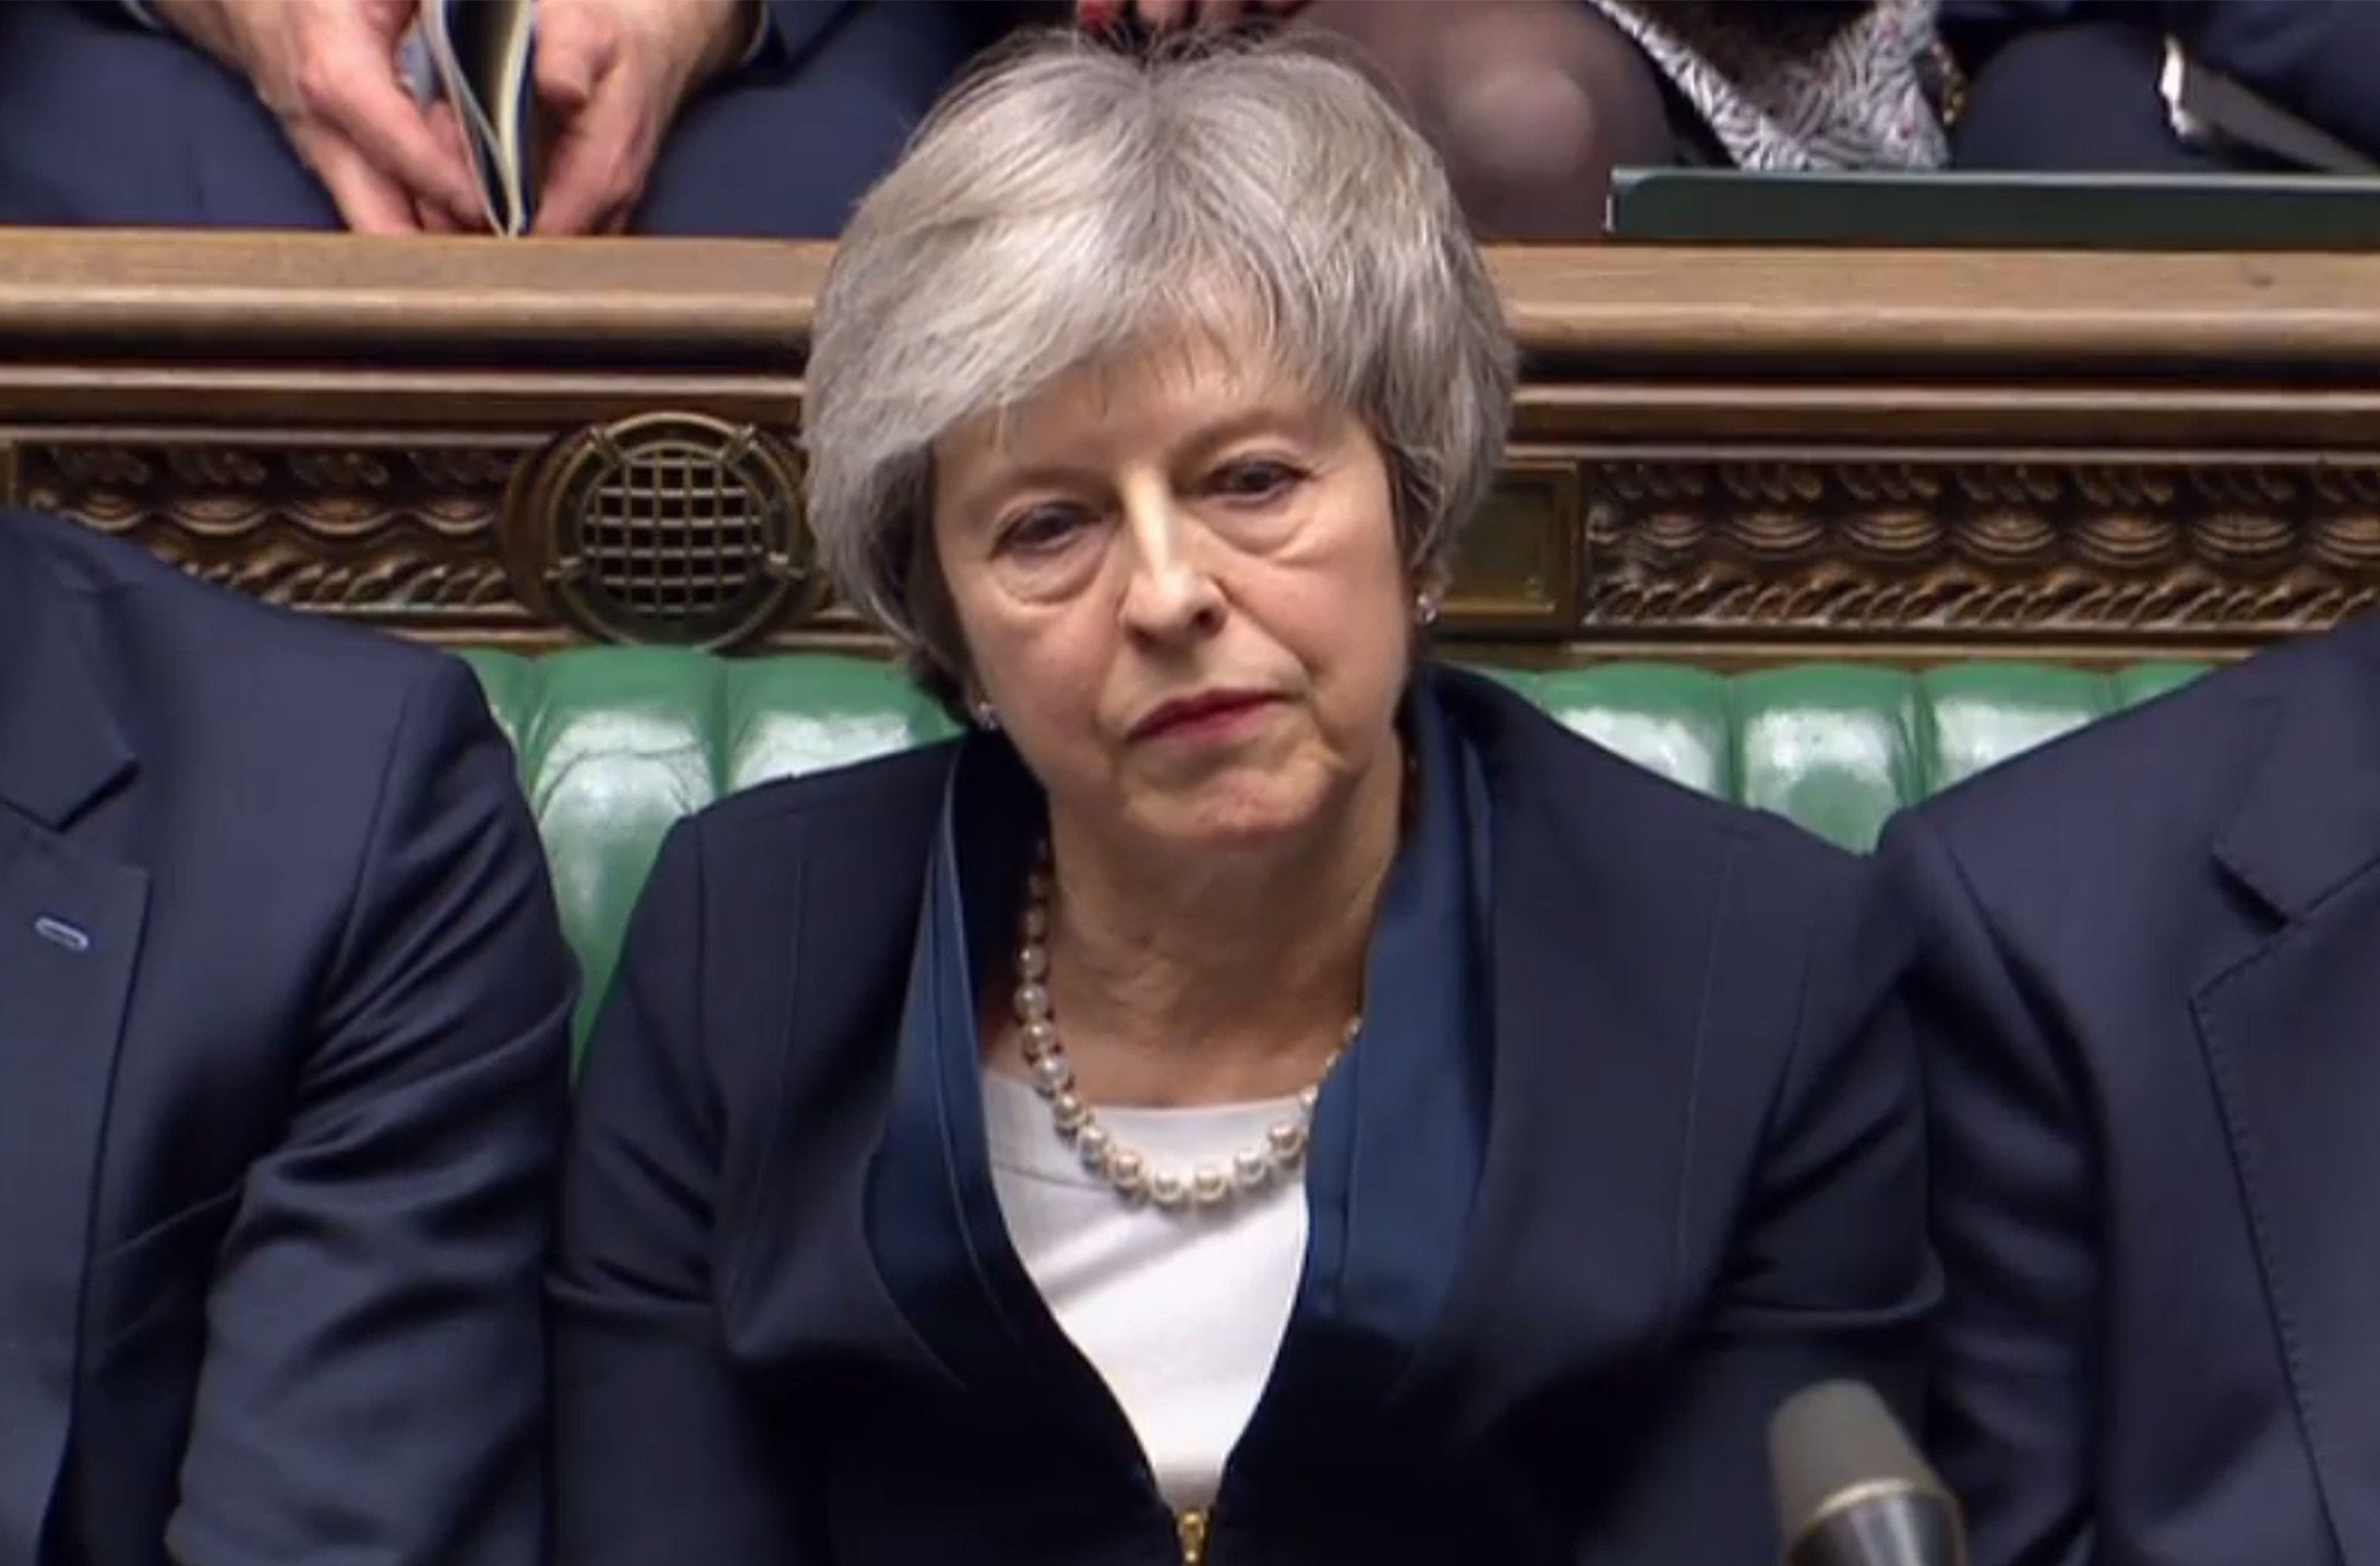 Britain's Theresa May survives 'no-confidence' vote after large Brexit defeat